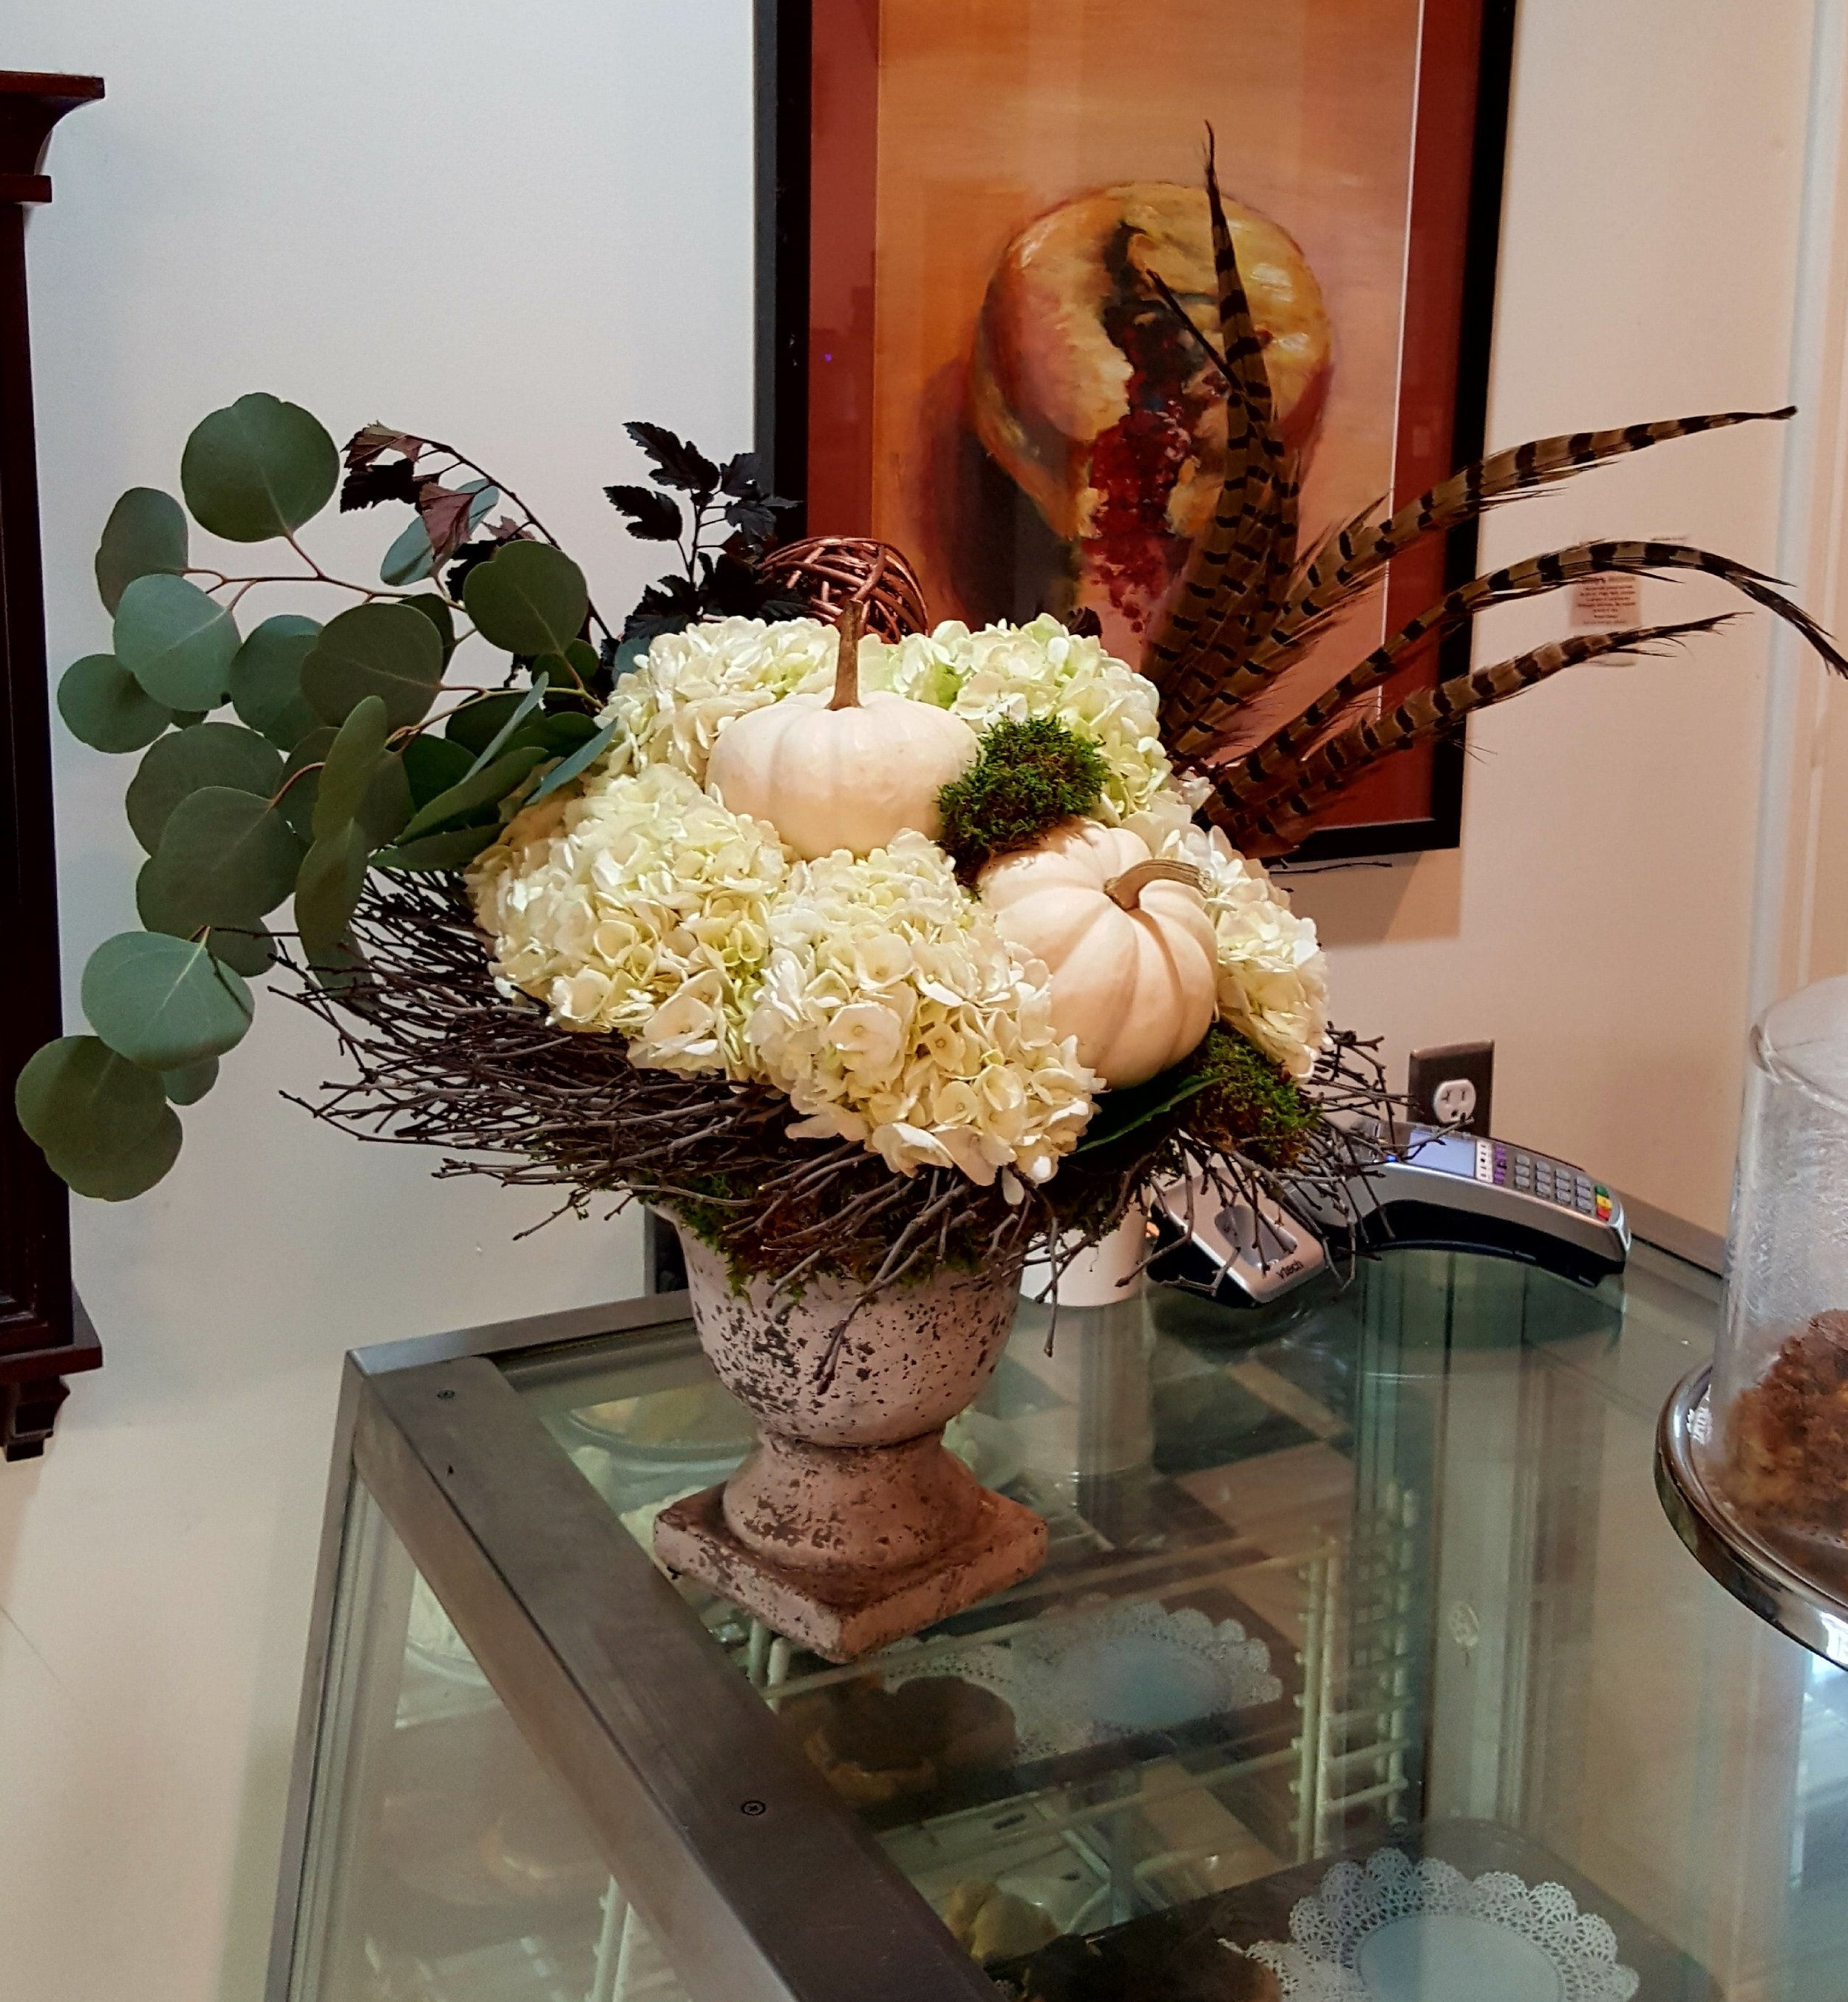 Hydrangeas, white gourds and feathers arrangement for office decor